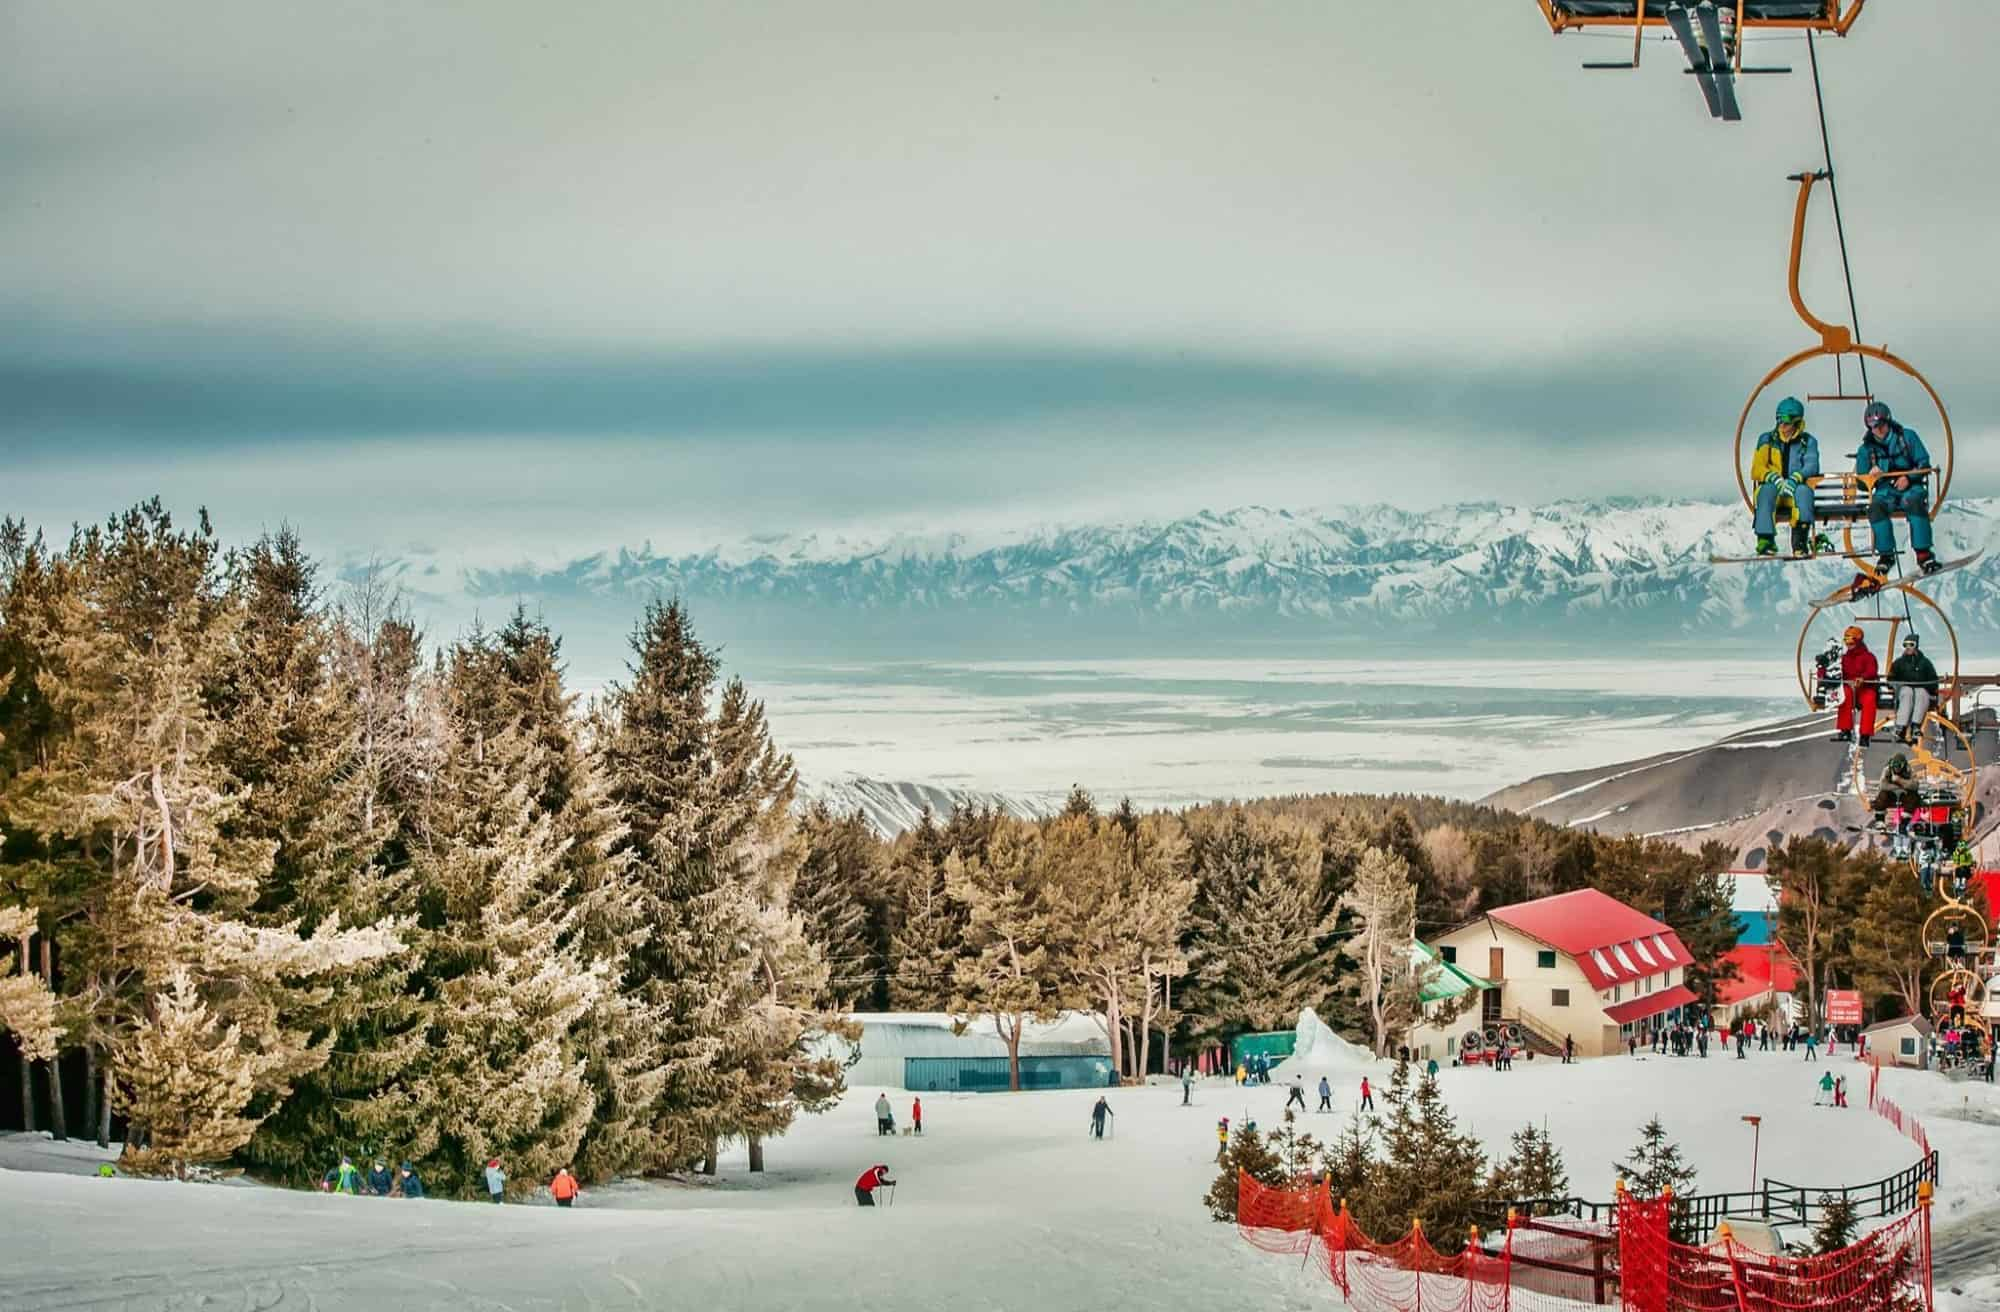 Winter sports in Karakol